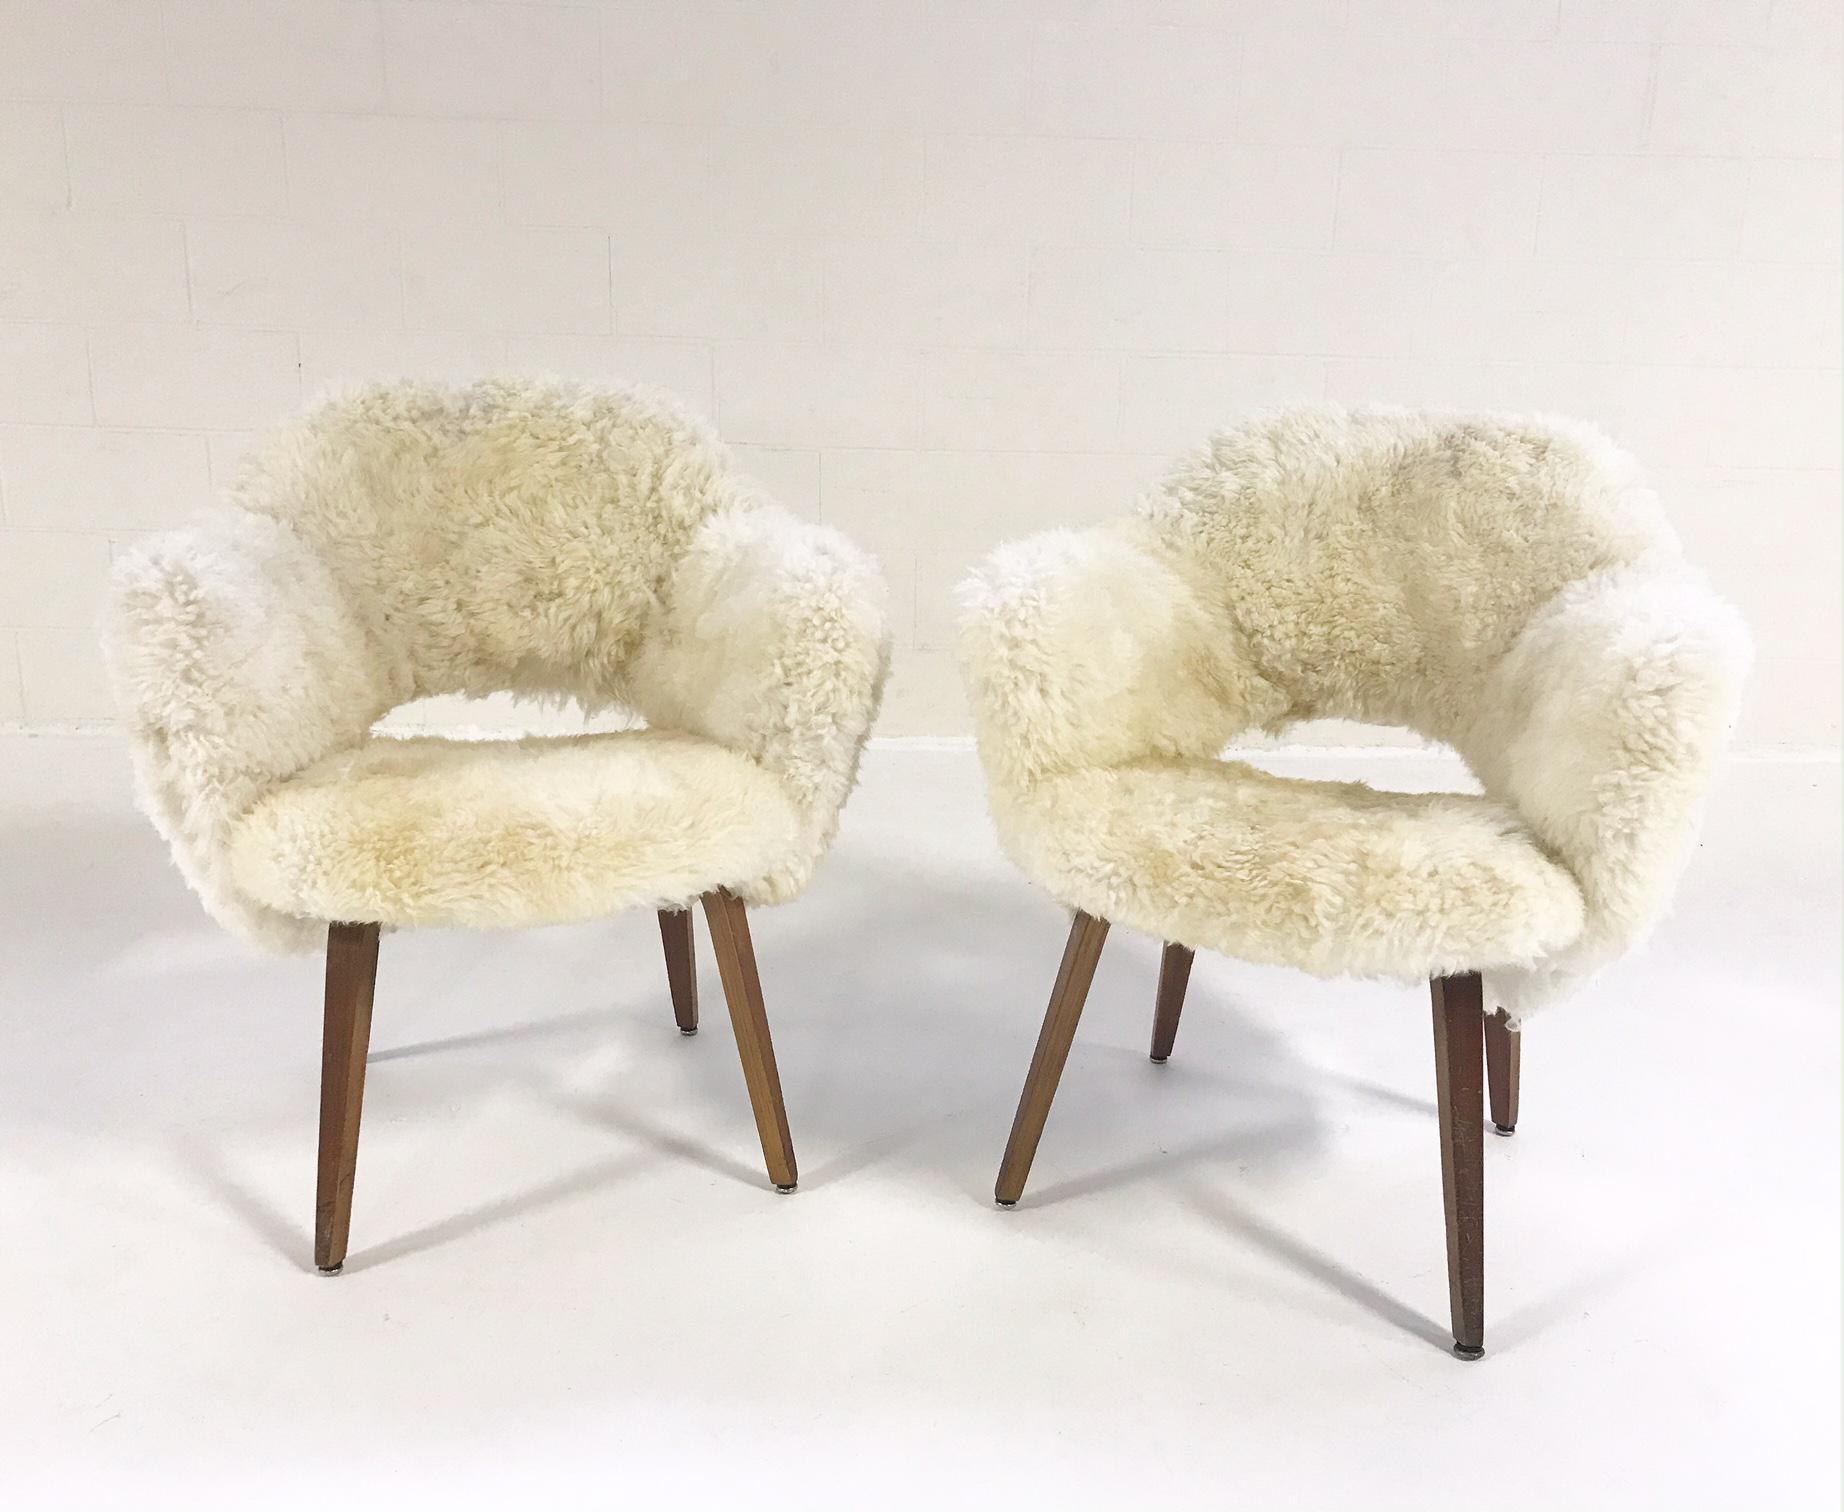 Forsyth Eero Saarinen Executive Armchairs For Knoll With Walnut Legs  Reupholstered In Brazilian Sheepskin   Pair